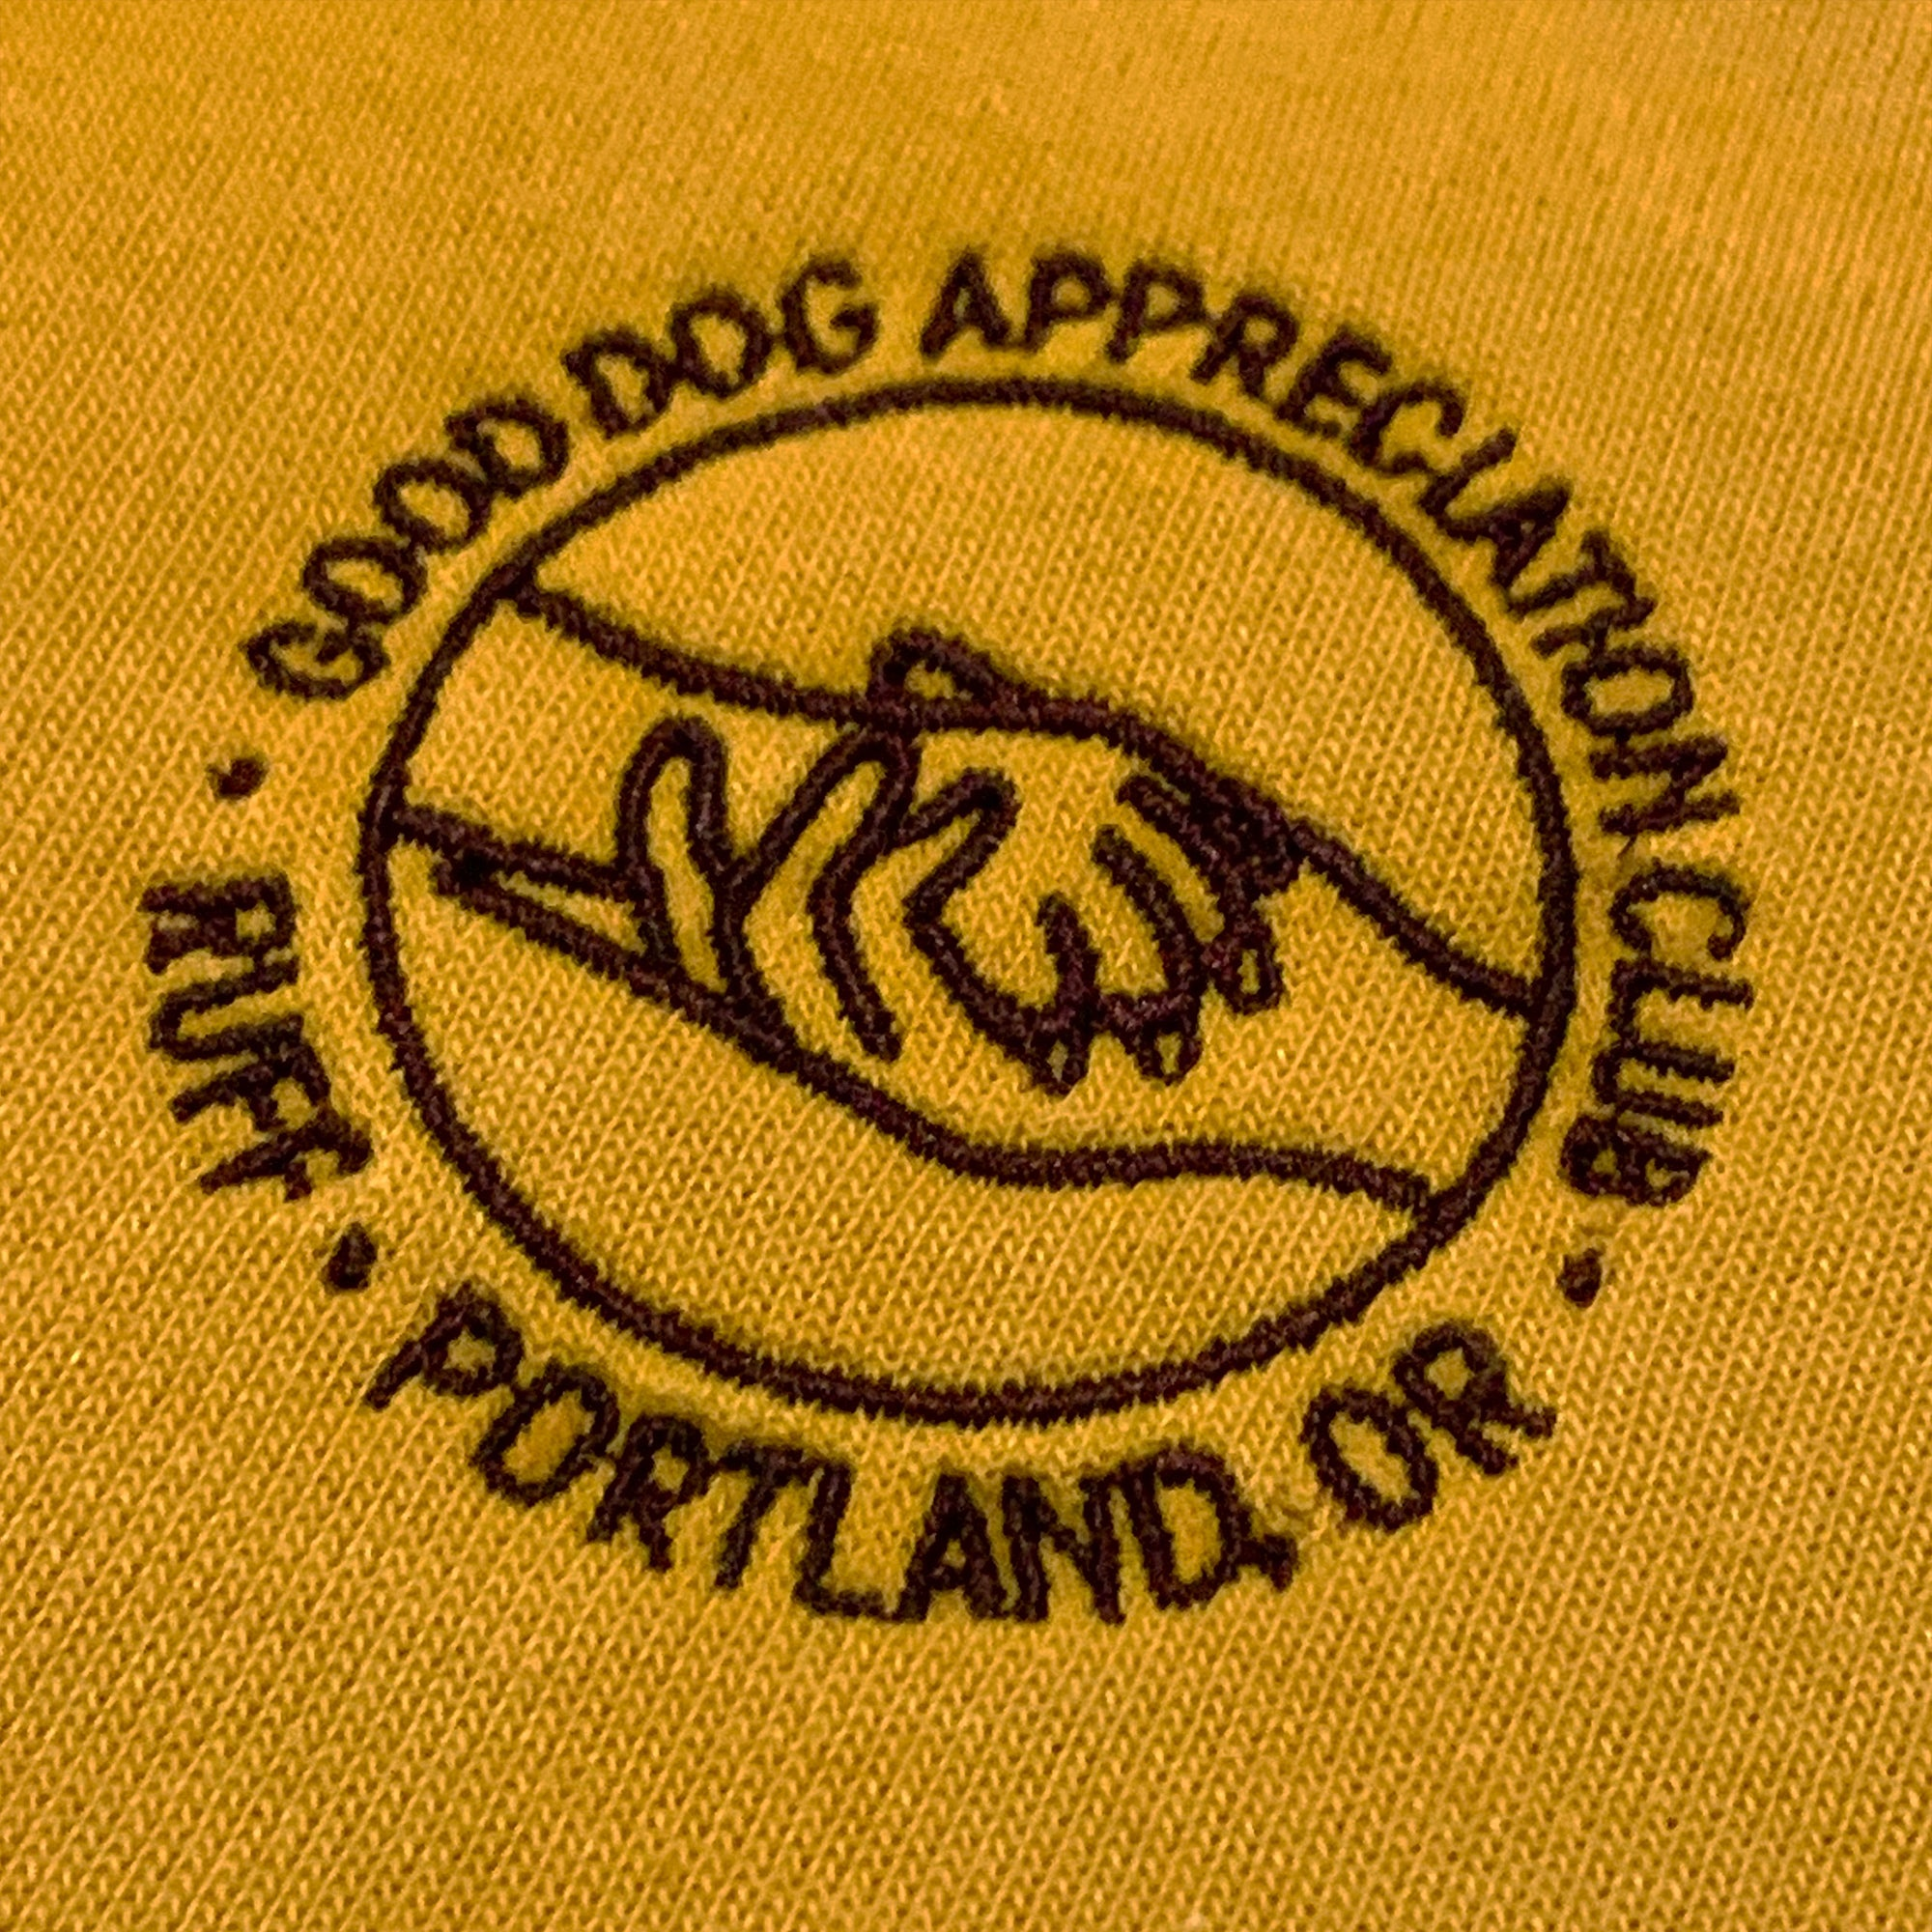 Good Dog Appreciation Club Crewneck Sweatshirt